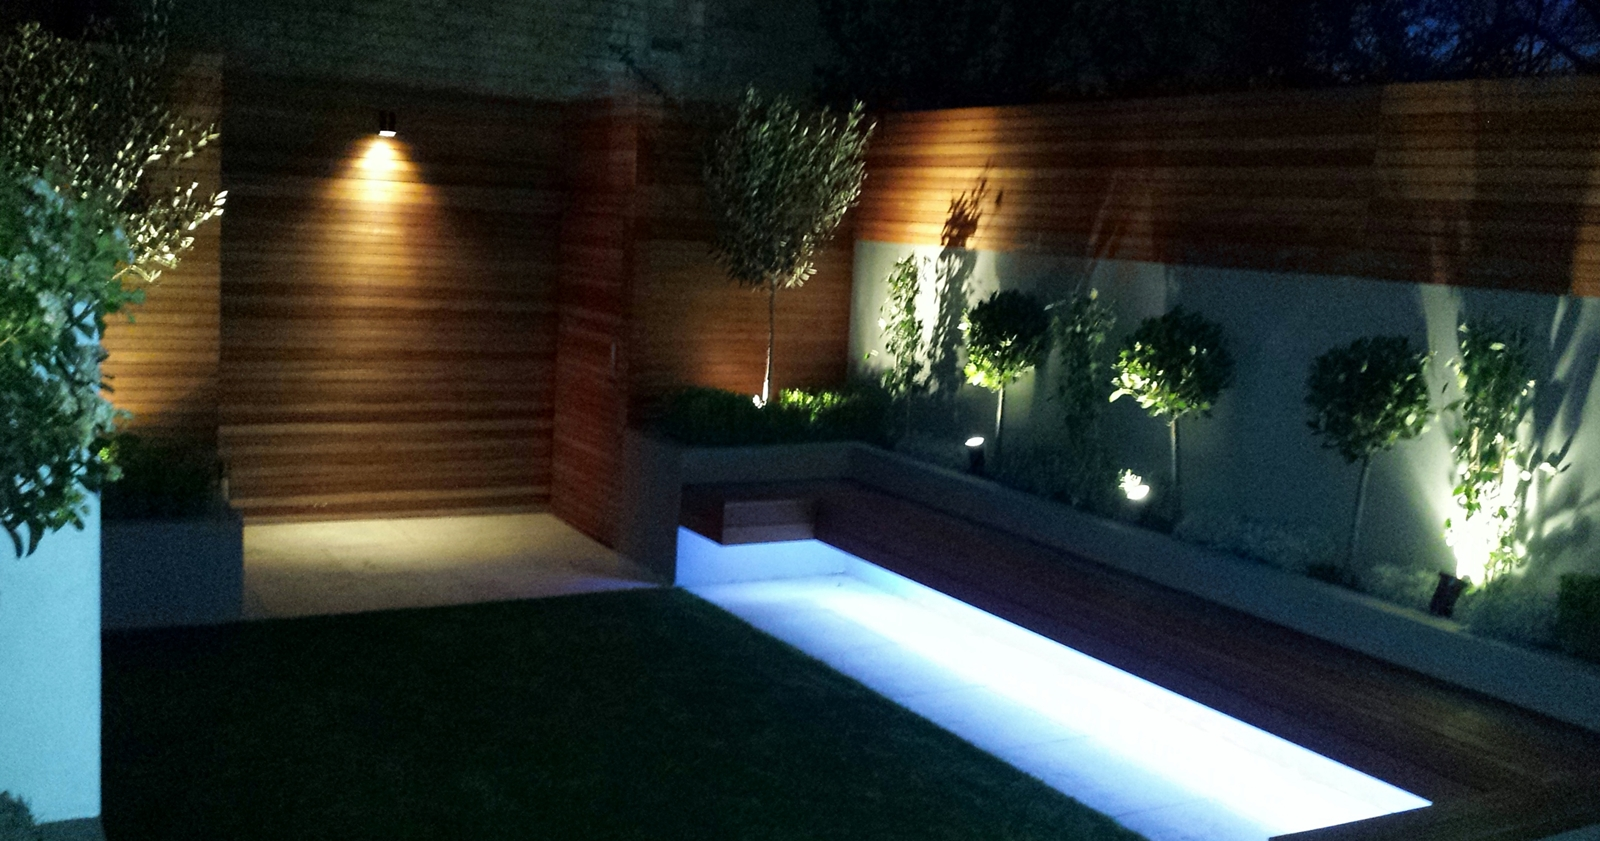 Modern garden design ideas great lighting fireplace for Garden lighting designs